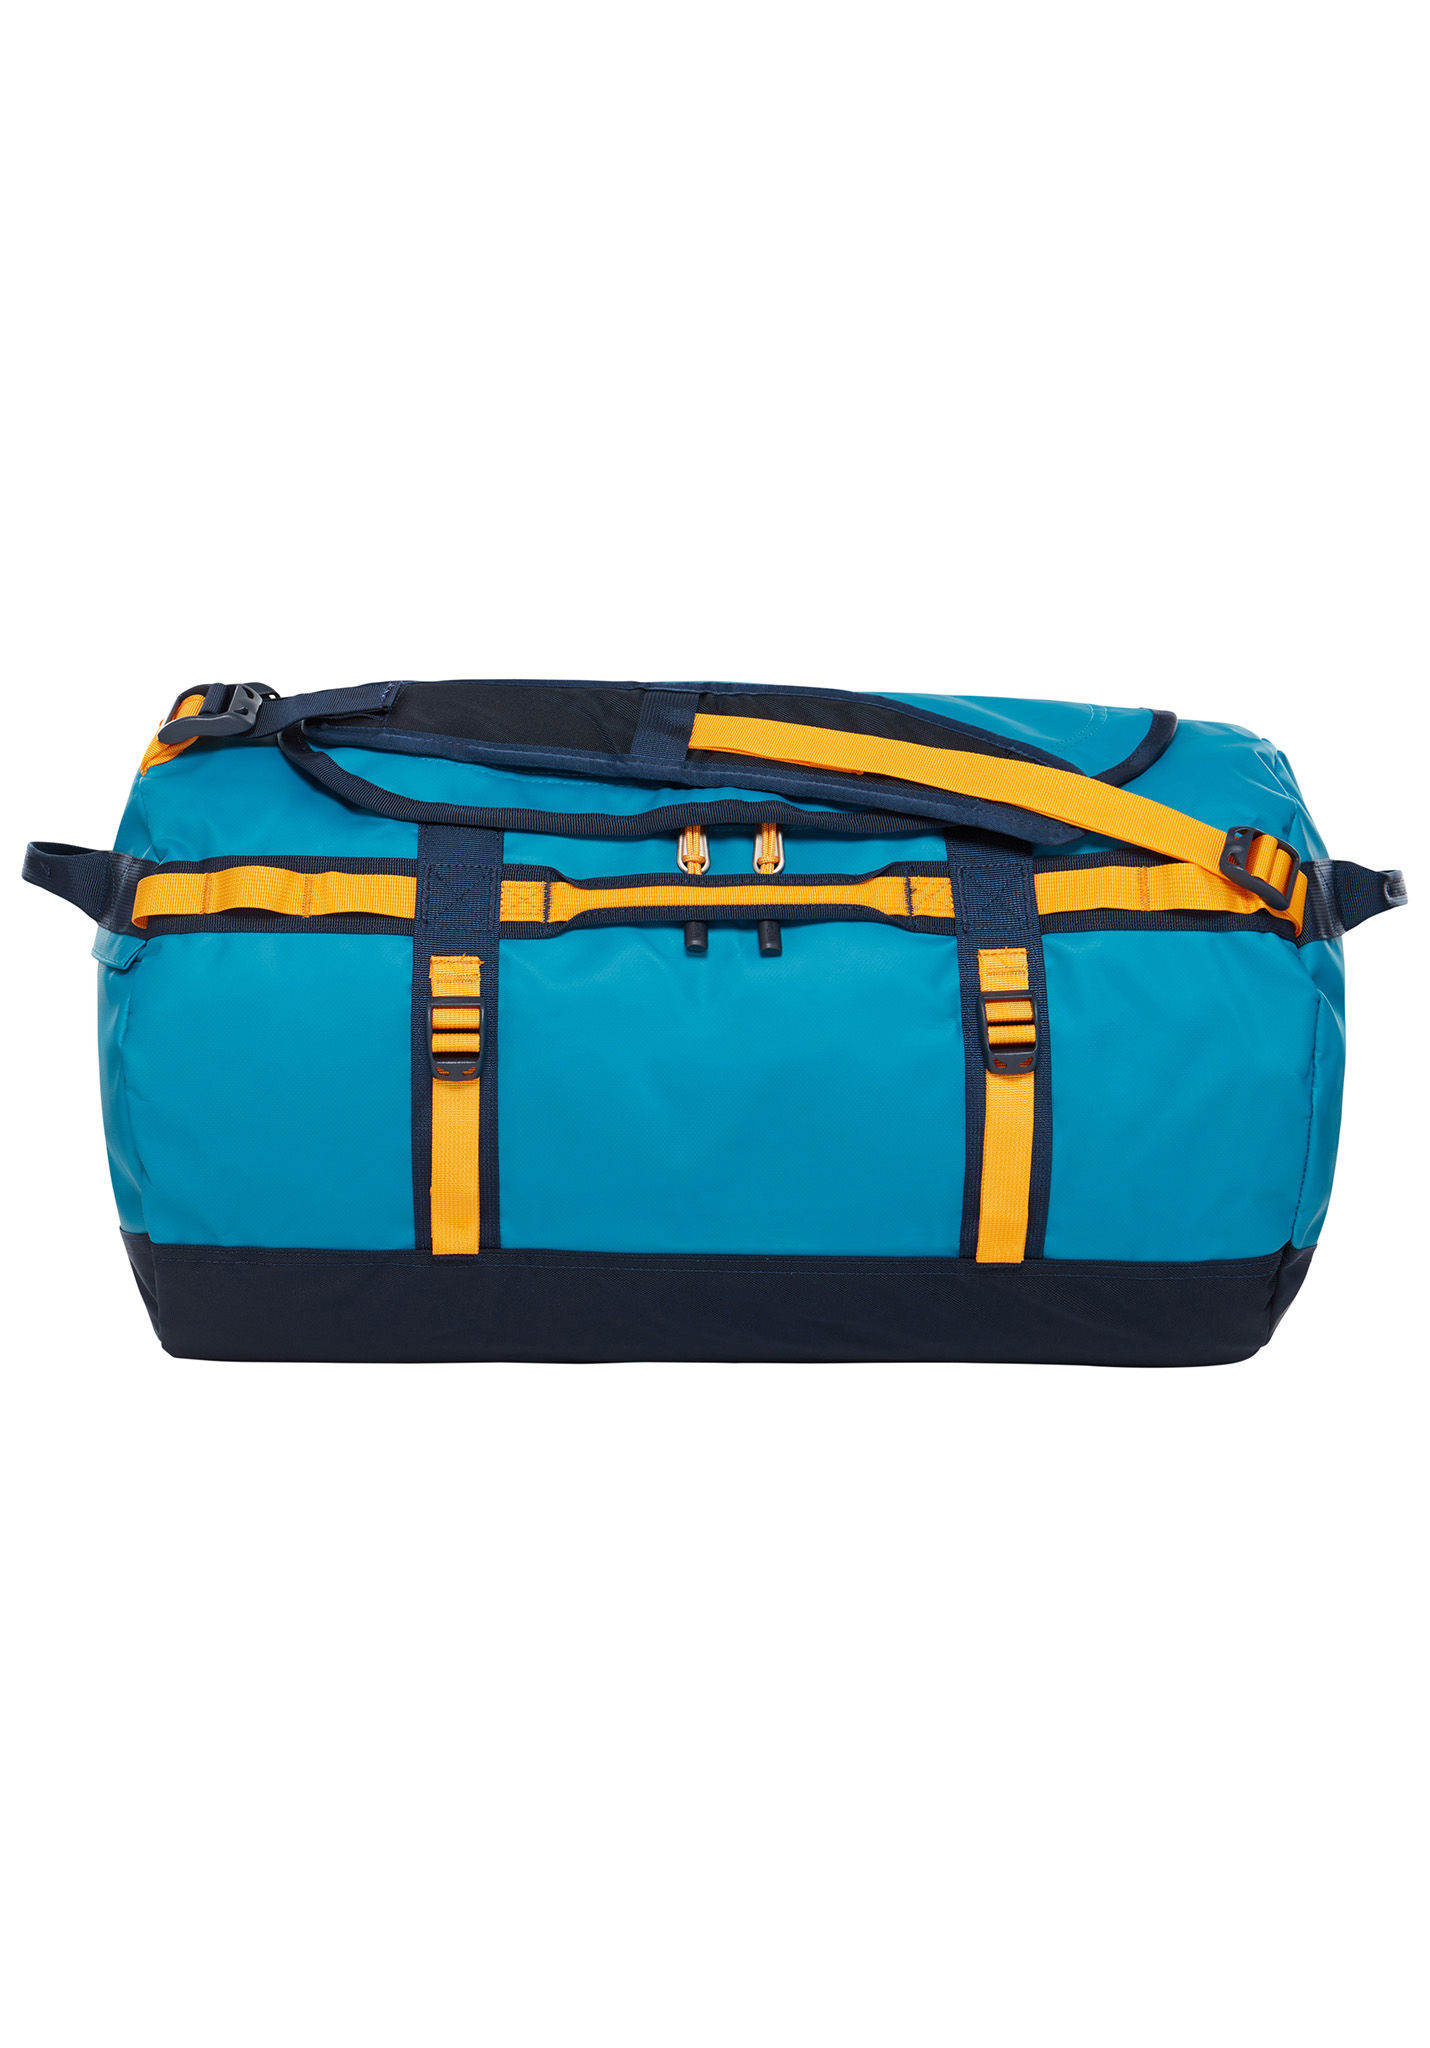 642bf217ab THE NORTH FACE Base Camp Duffel S - Gym Bag - Blue - Planet Sports